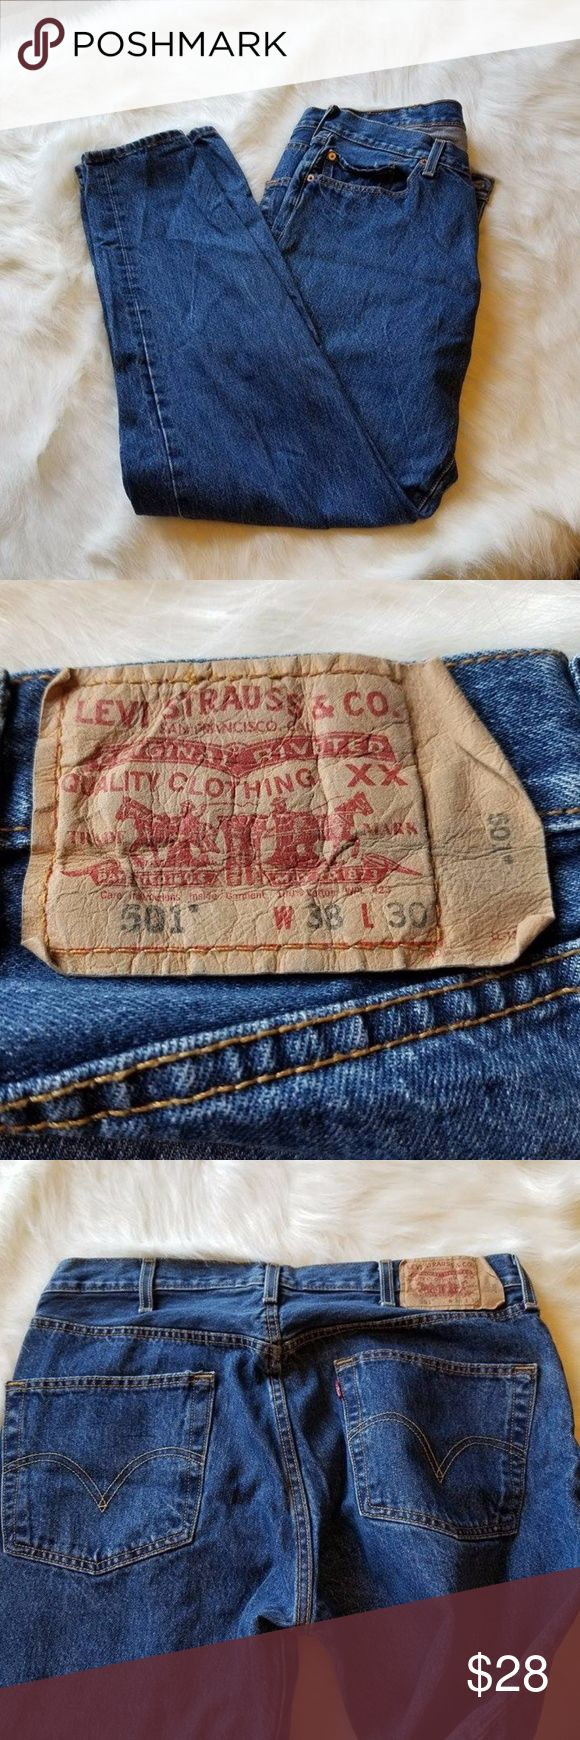 FREE SHIPPING Blue Levi's 501 Straight leg 38x30 2)These mens Levi's are blue with multiple buttons in the front.  They are in great condition!  LIKE NEW.  They are a straight leg cut.  Size- W 38 L 30 ADD TO A BUNDLE FOR FREE SHIPPING  FREE SHIPPING NOT VALID ON OFFERS Levi's Jeans Straight